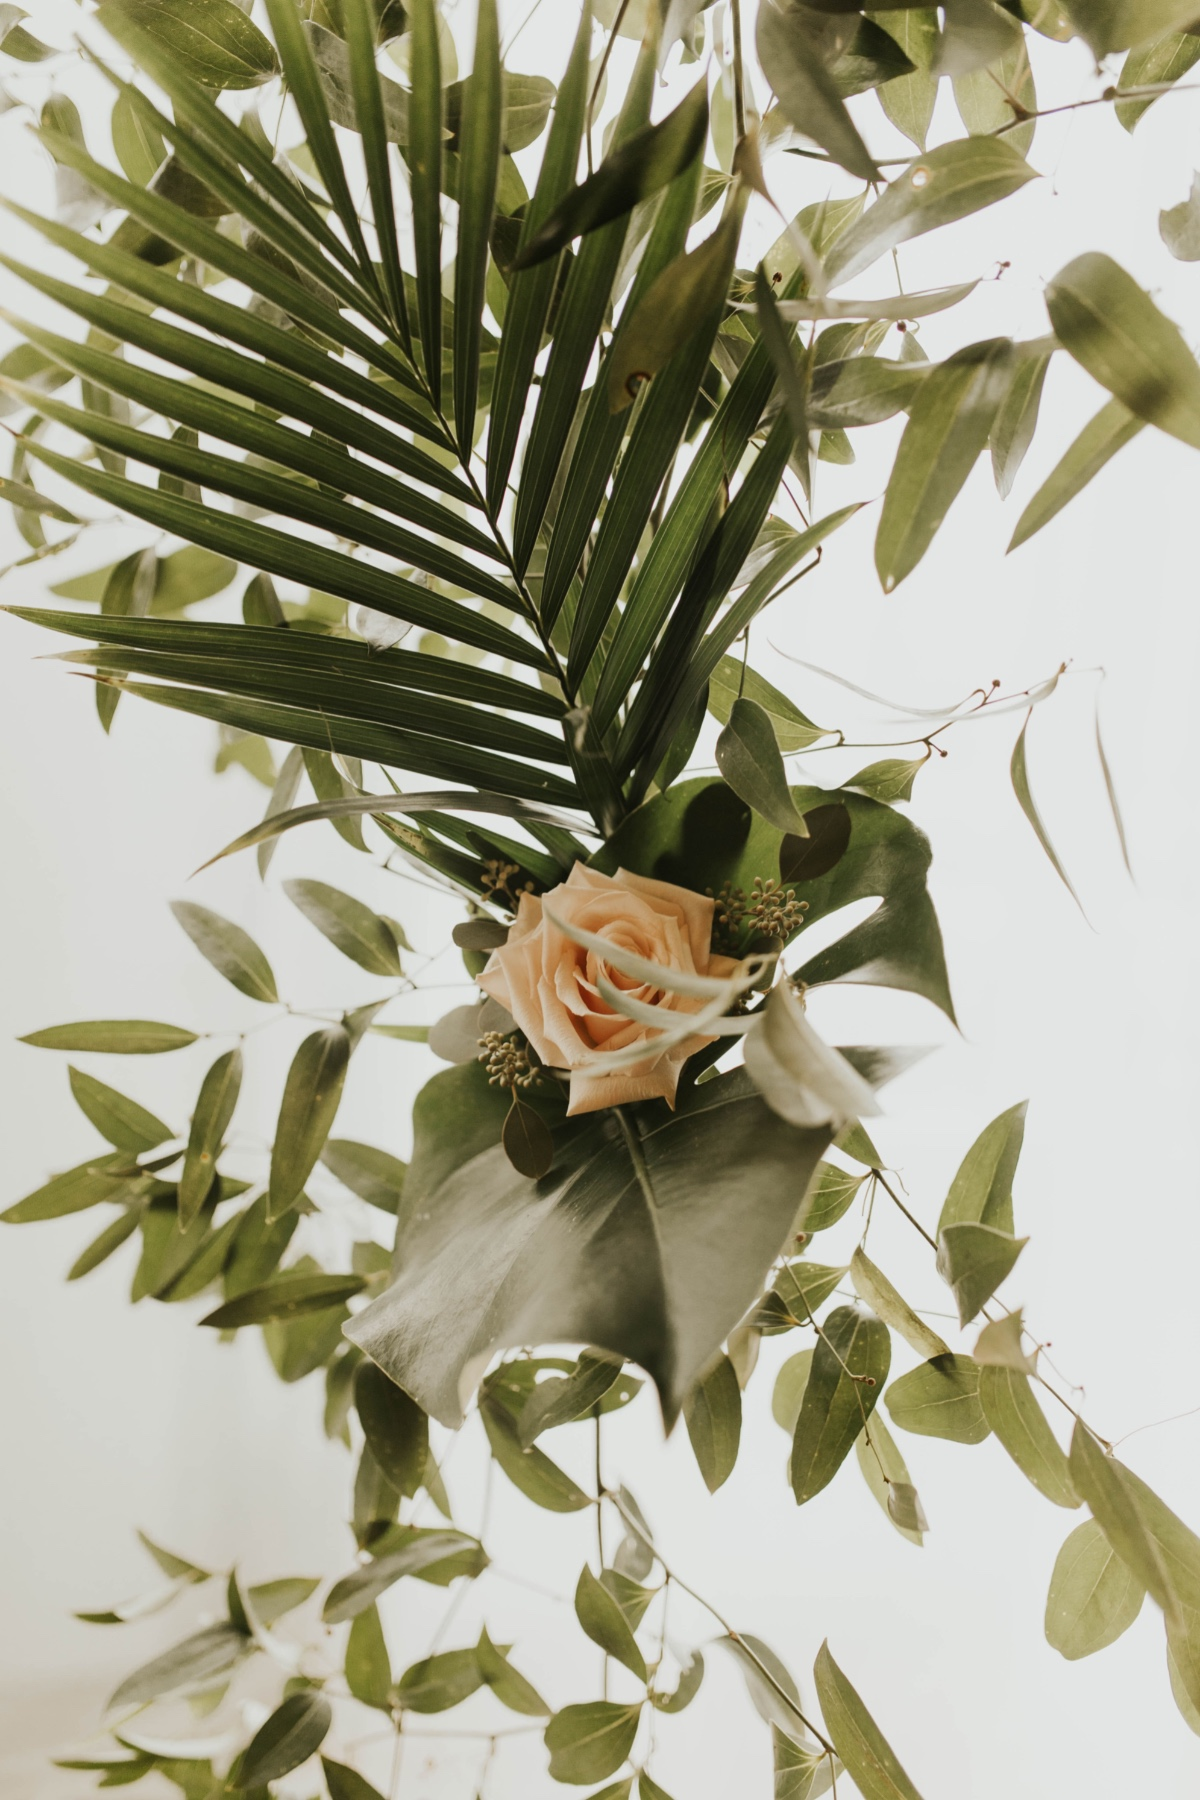 greenery mixed with palm leaves for wedding backdrop